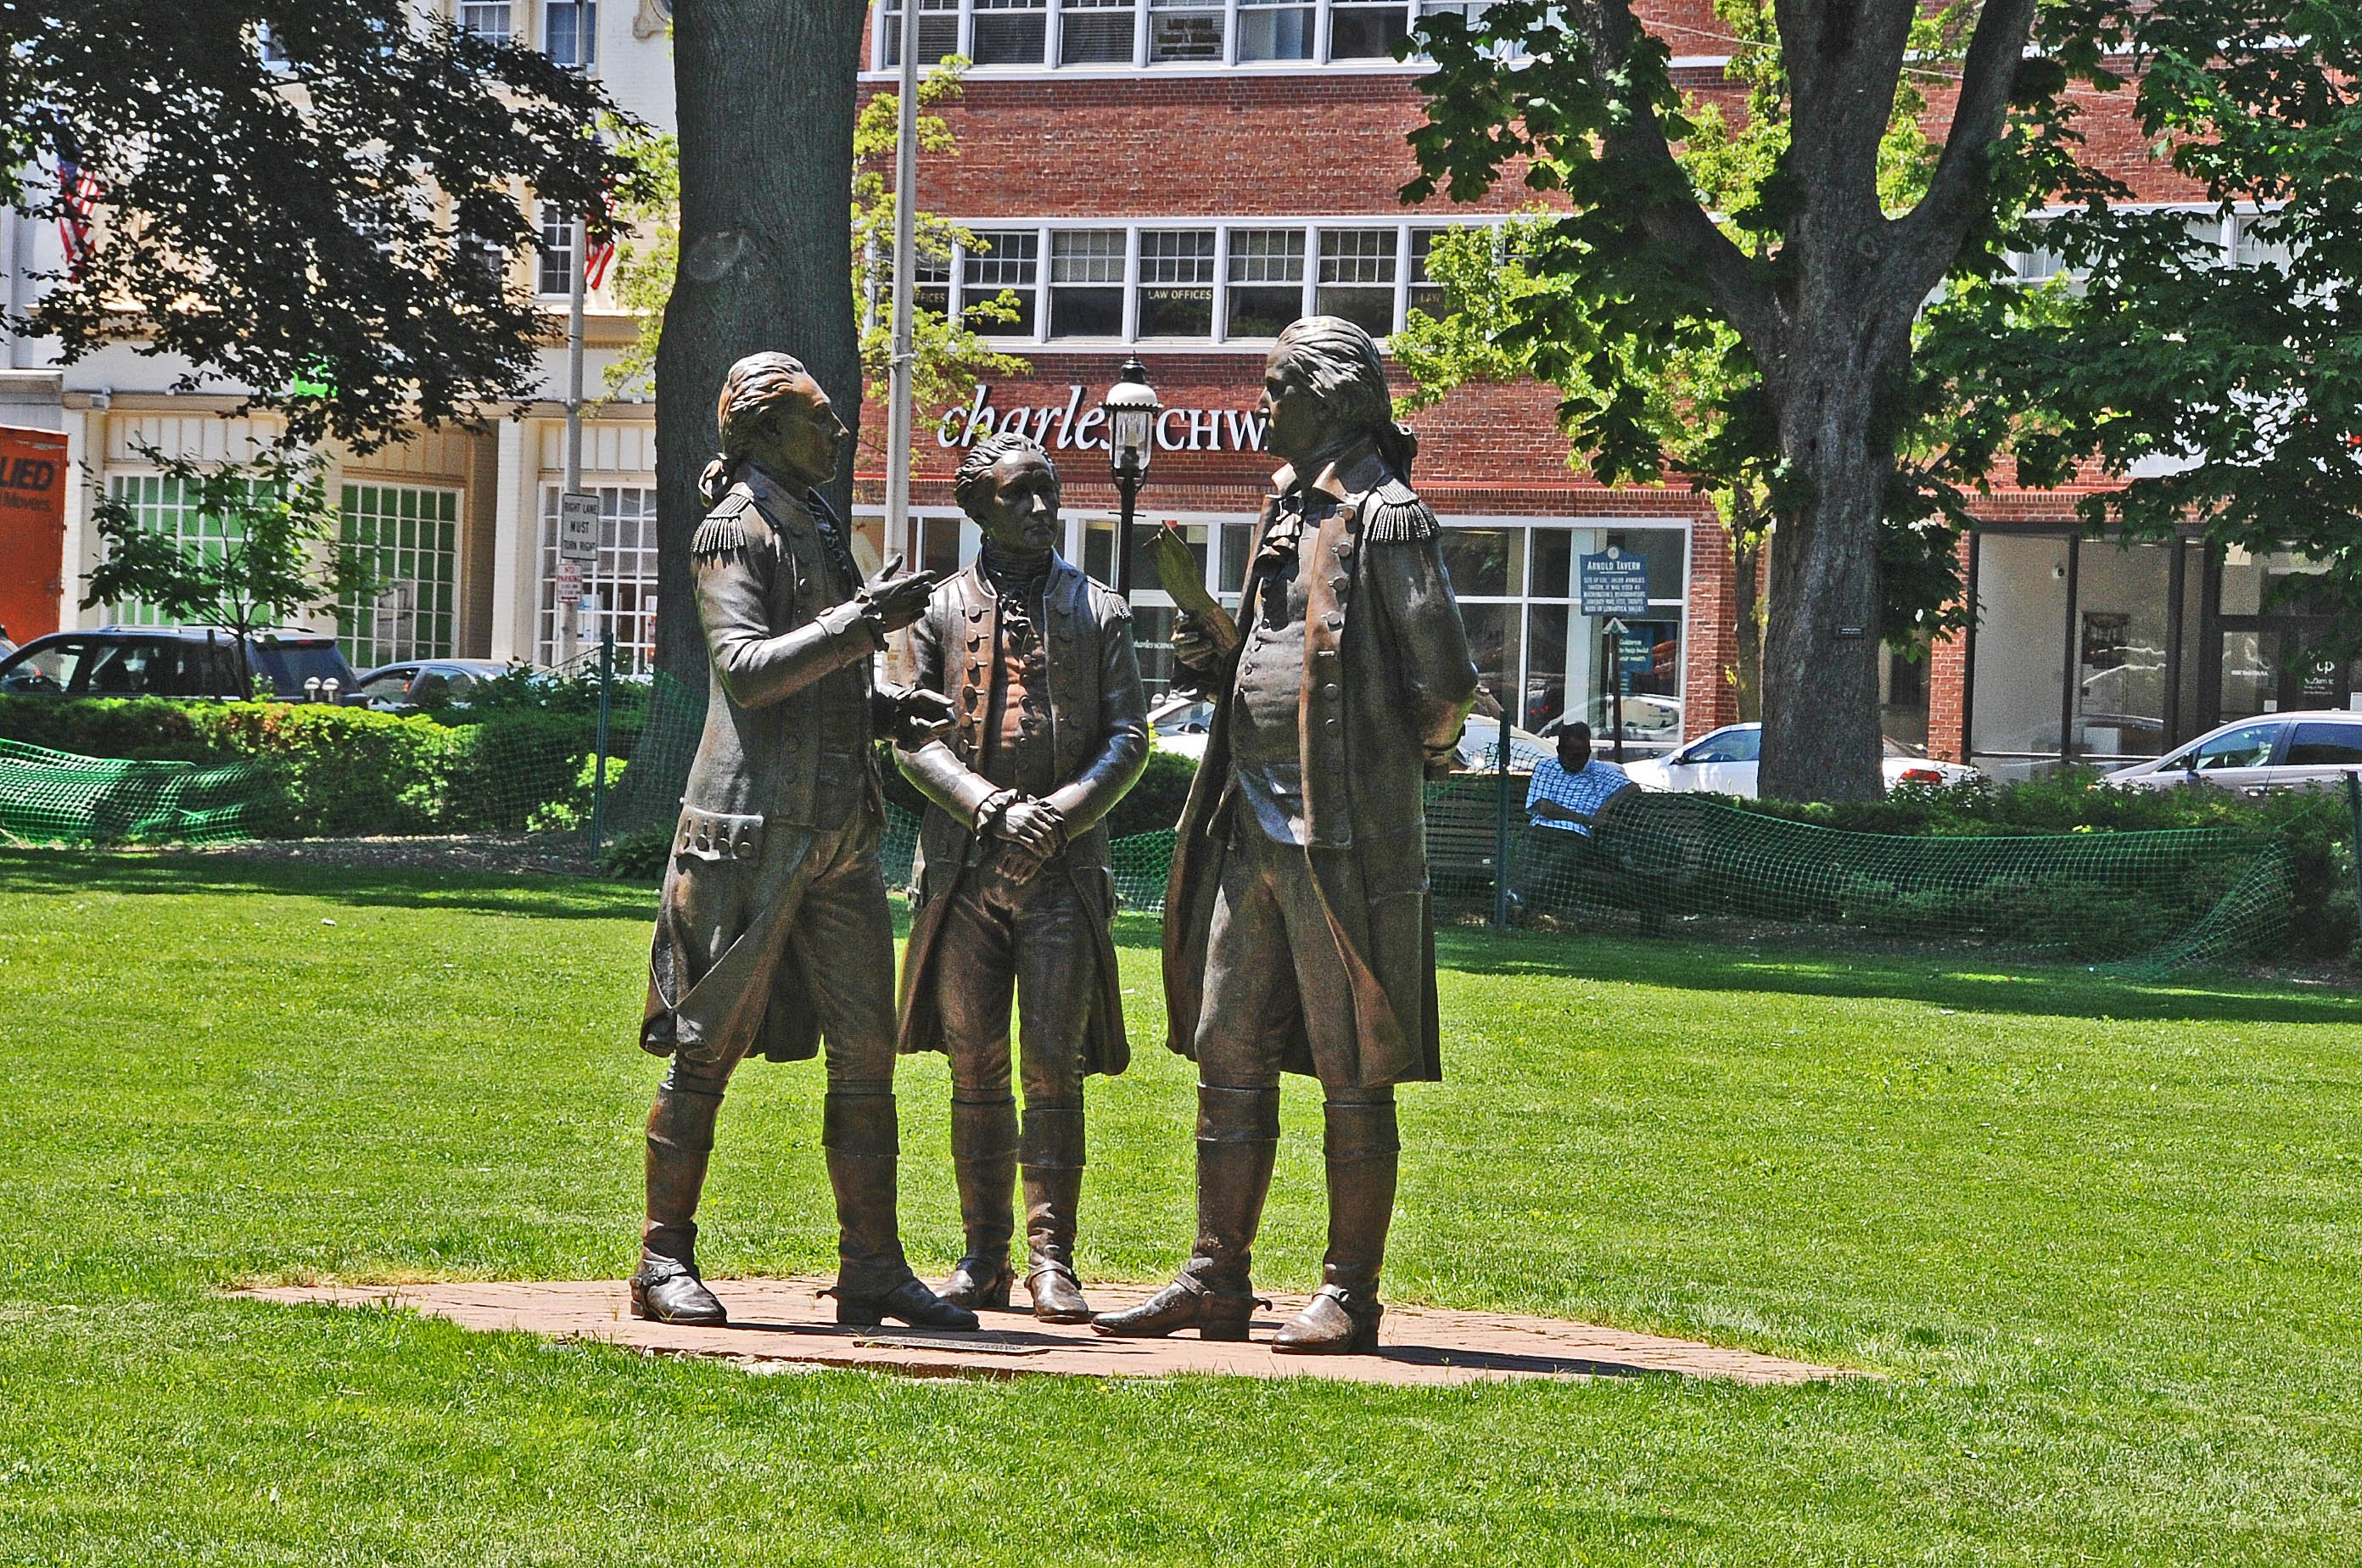 Life-sized statues of George Washington and his generals Alexander Hamilton and Marquis De Lafayette on the Morristown green, the site of Washington's first winter encampment in 1777. Image from digital commons